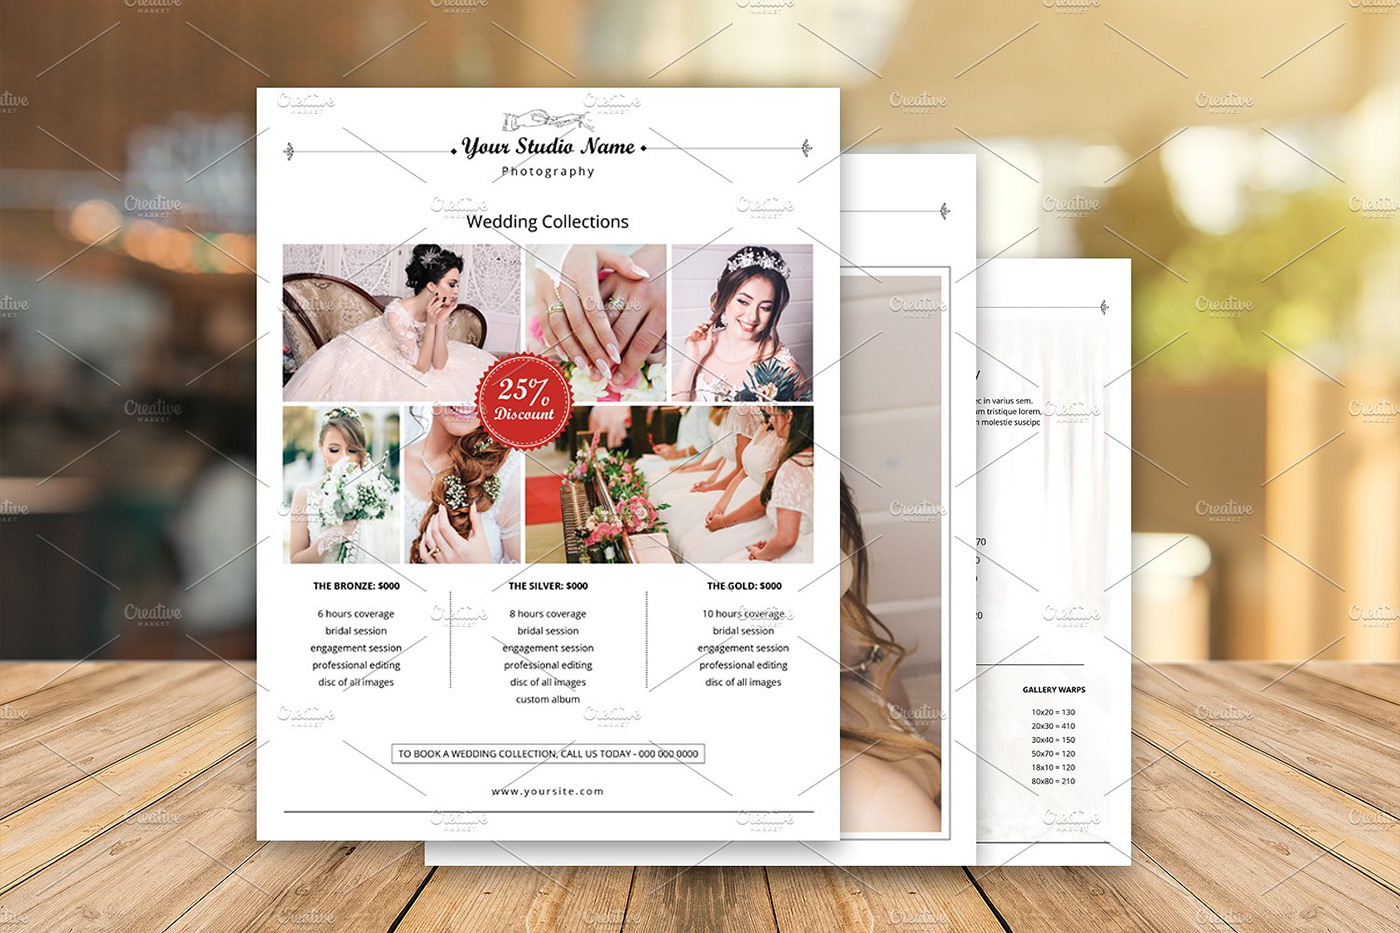 Wedding Photographer Pricing Guide Template on Behance